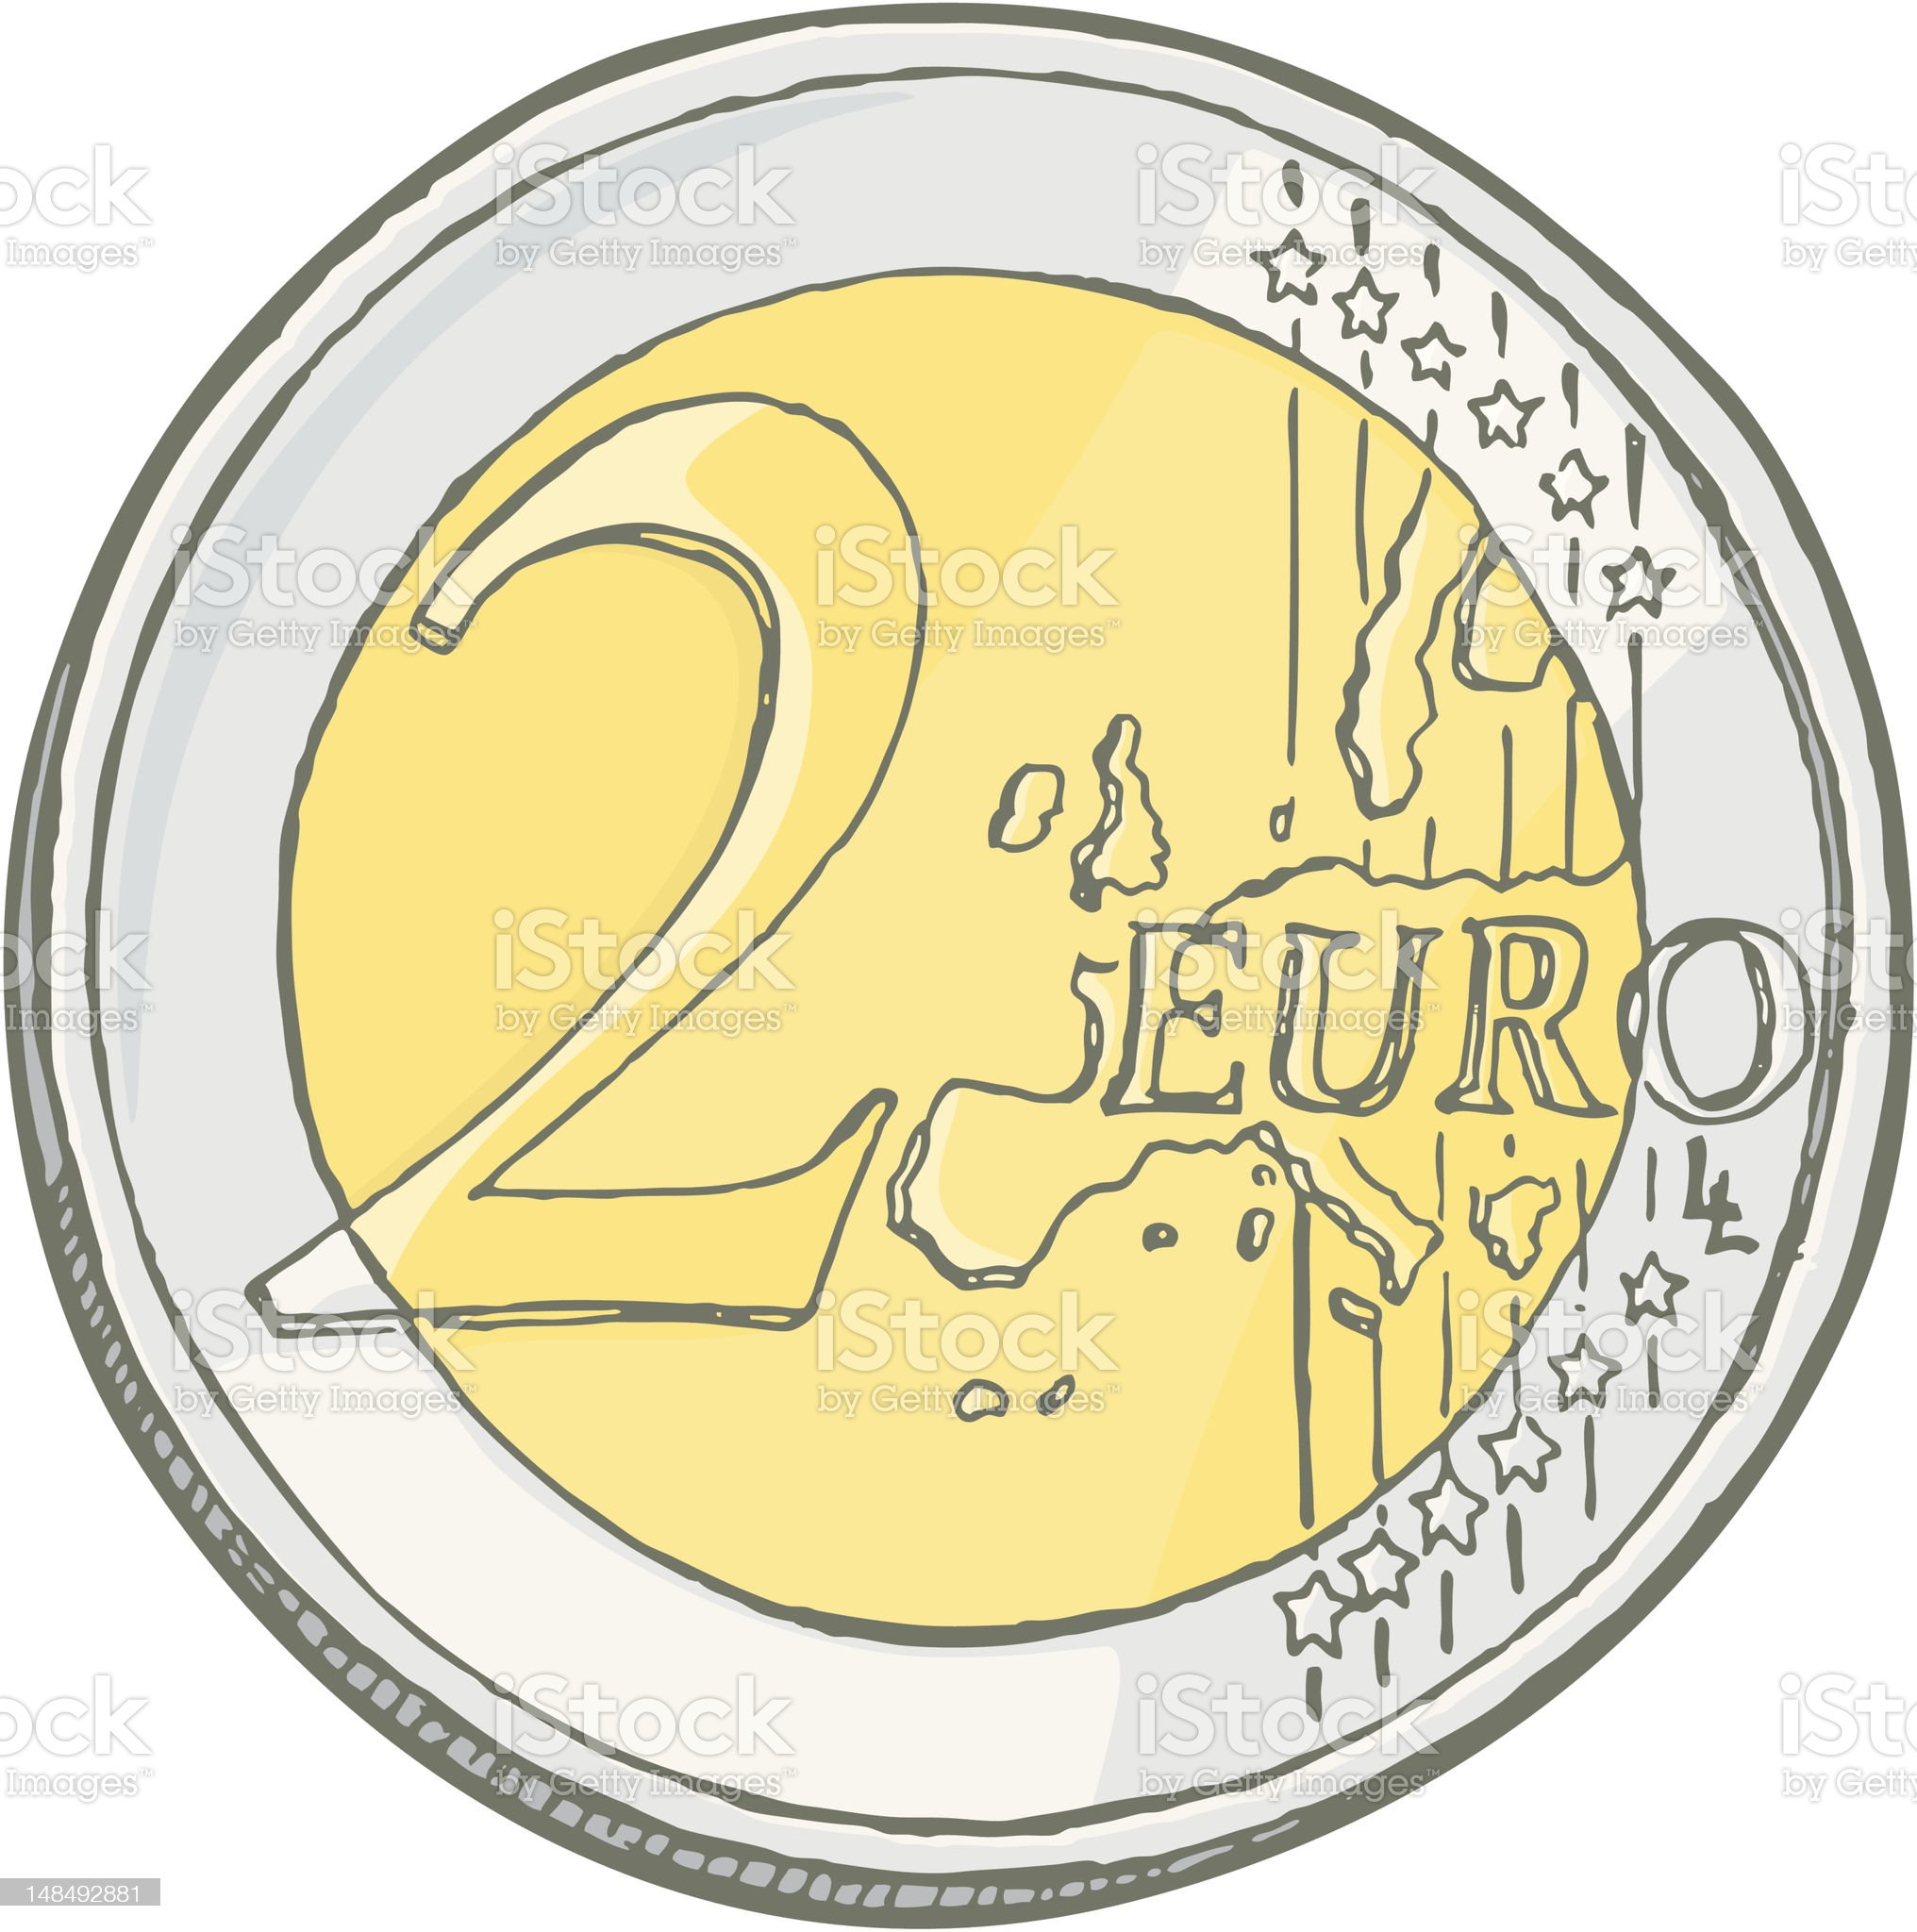 Two euros coin sketch royalty-free stock vector art